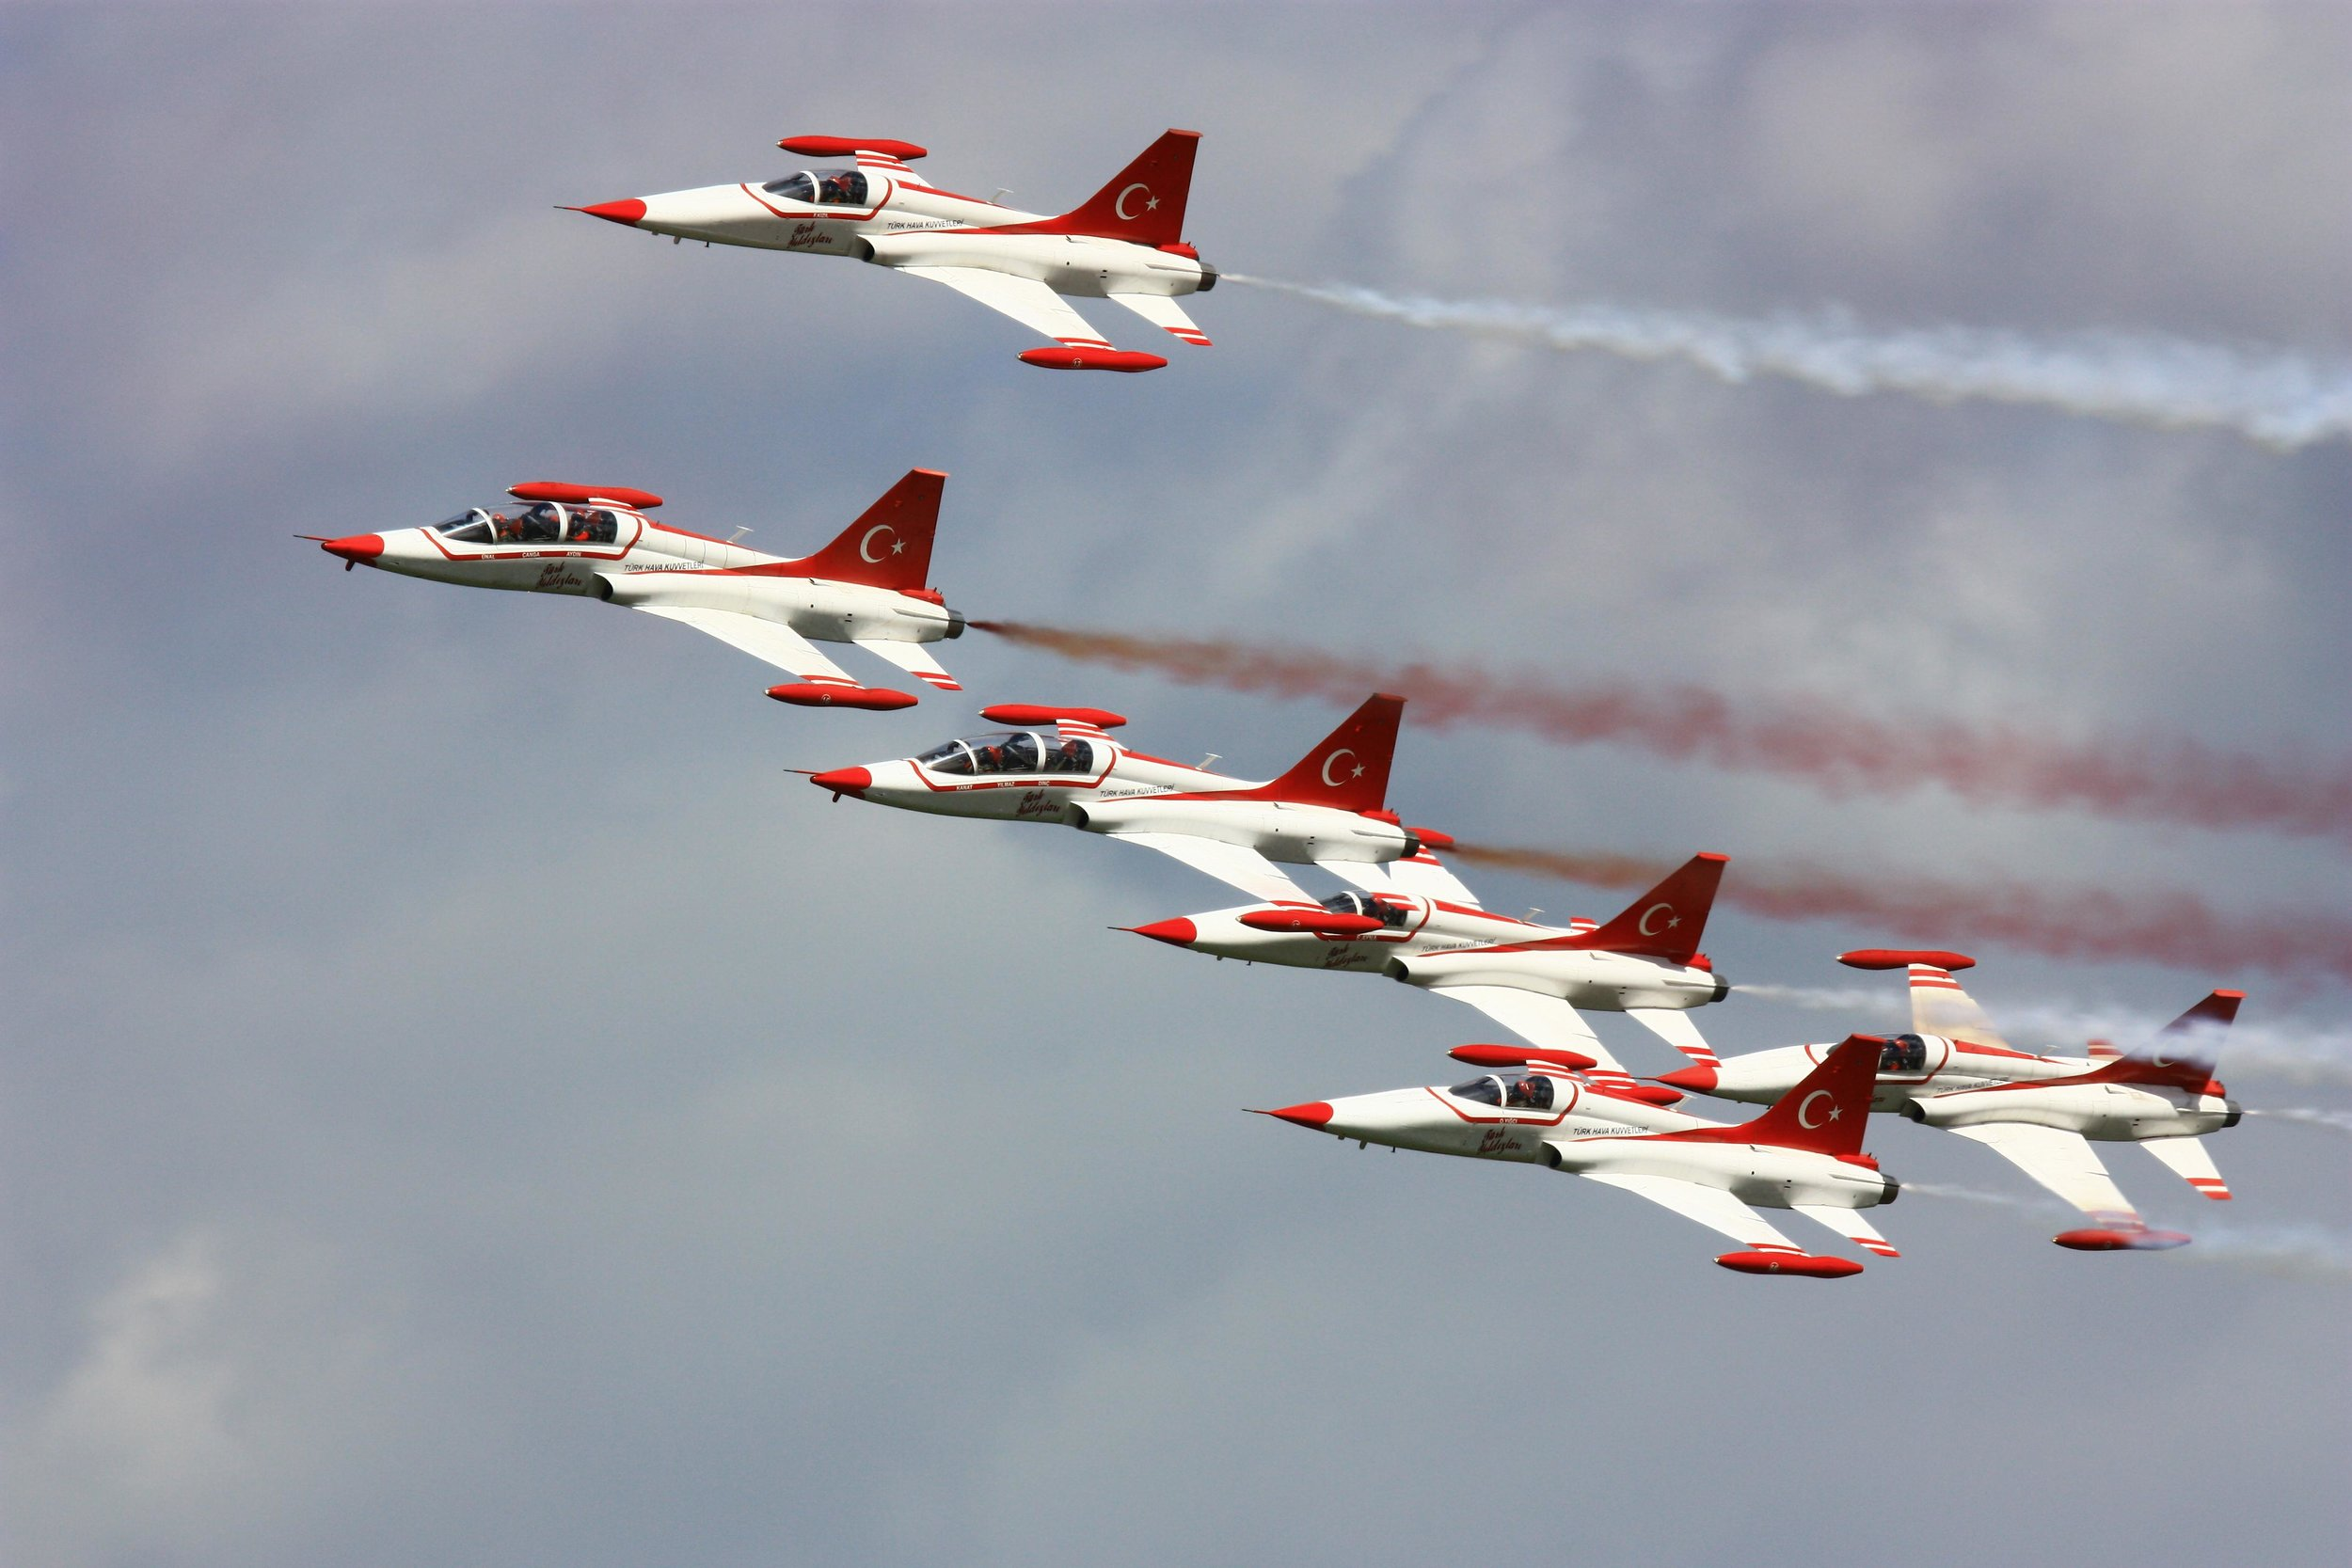 Display team of the Turkisch stars with the NF-5 Freedom Fighters.